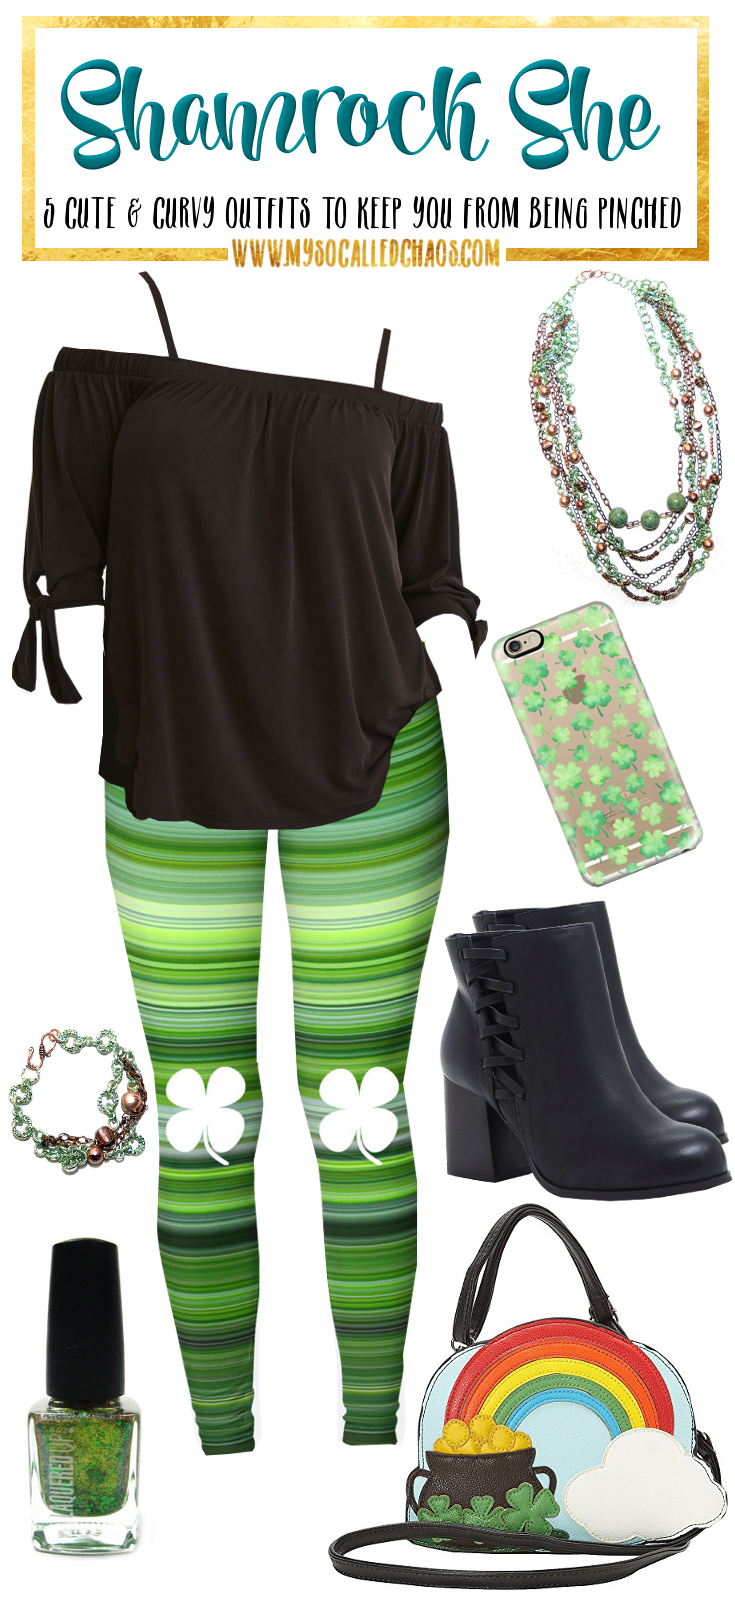 5 Curvy St. Patrick's Day Looks to Keep You From Getting Pinched: Shamrock She